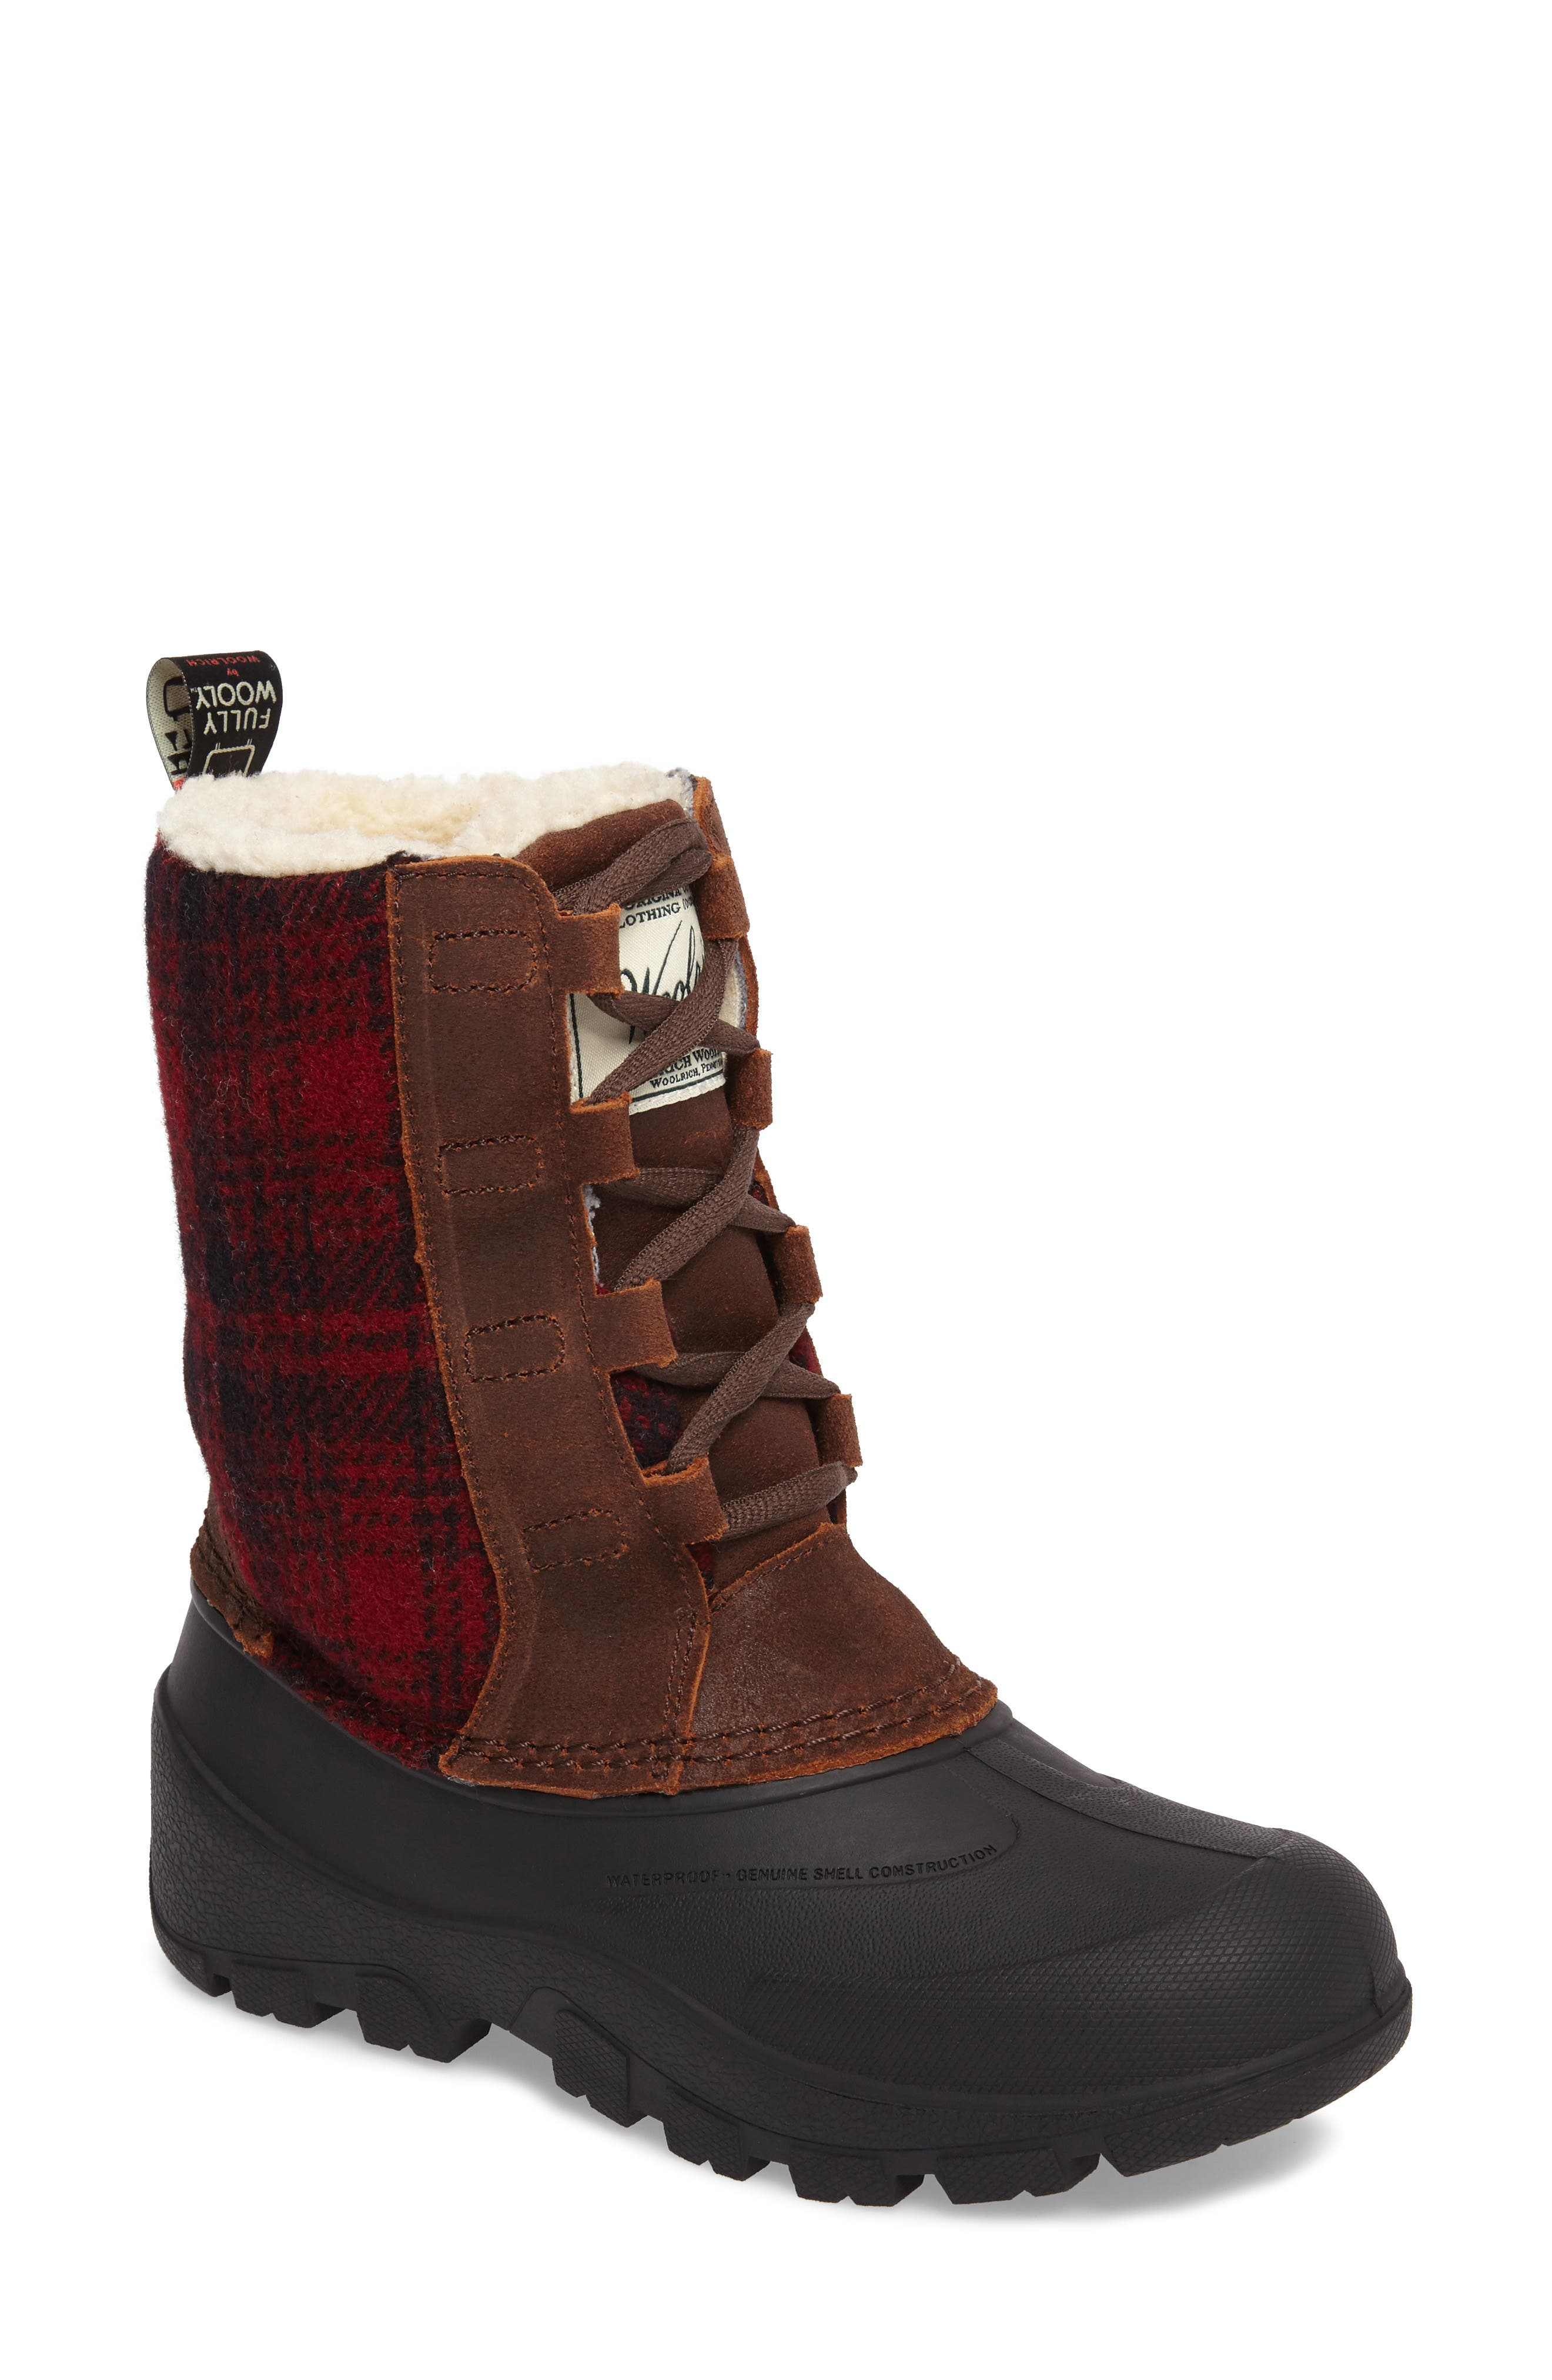 Main Image - Woolrich Fully Wooly Tundracat Waterproof Insulated Winter Boot (Women)